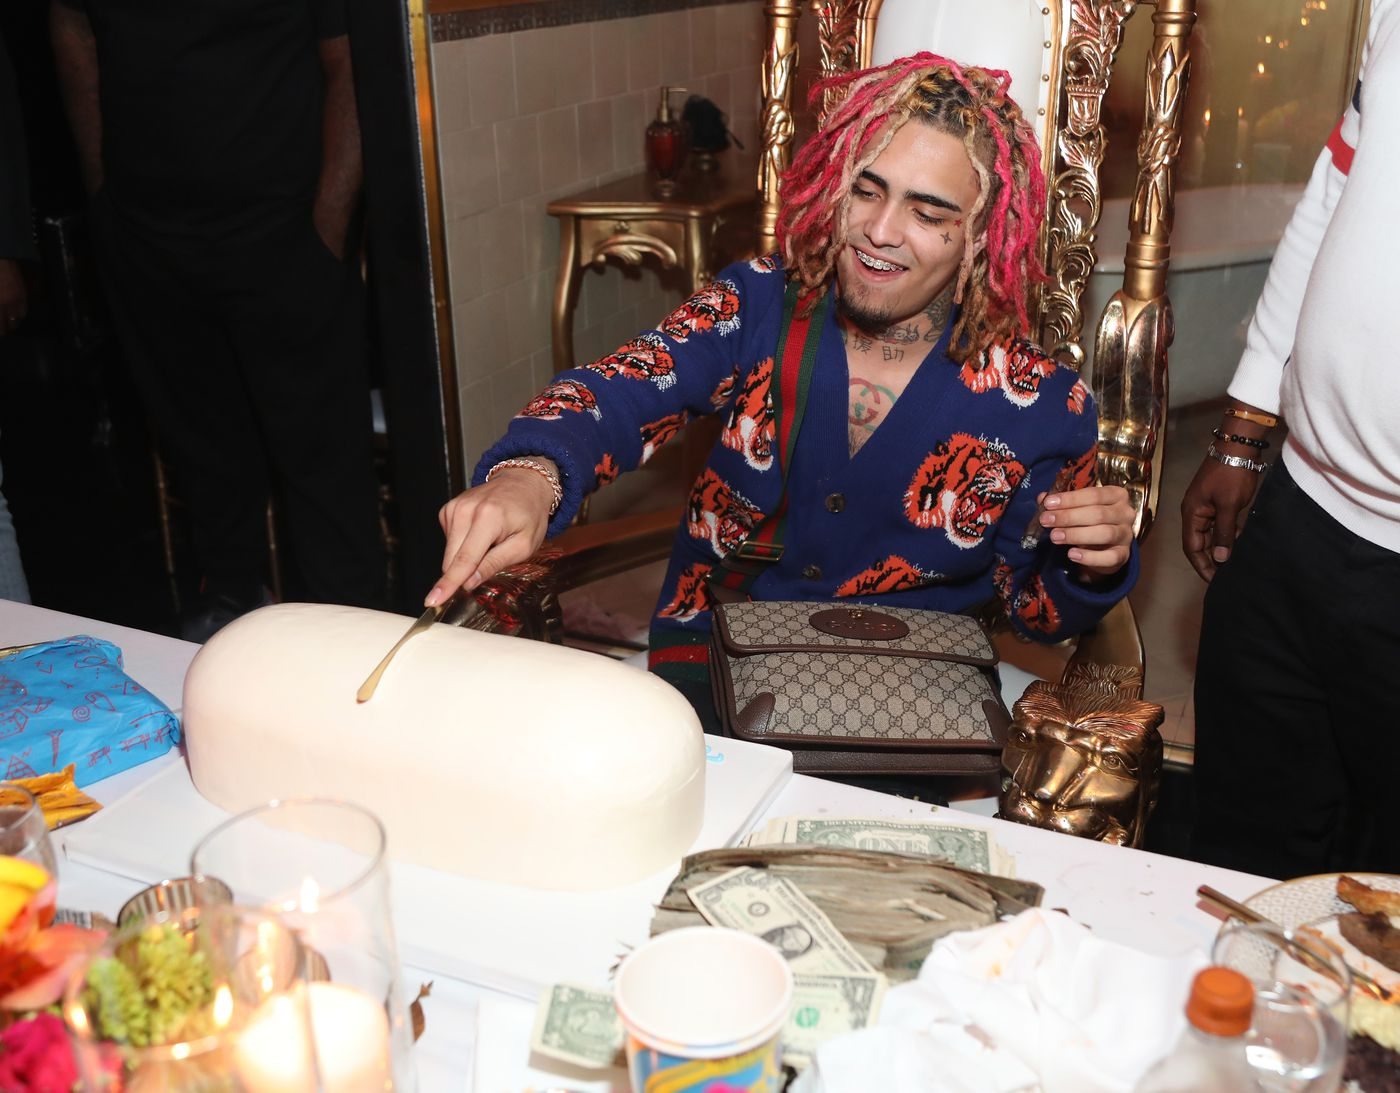 198d45820 Lil Pump Loves Gucci, and His Teen Fans Are Buying In - Racked